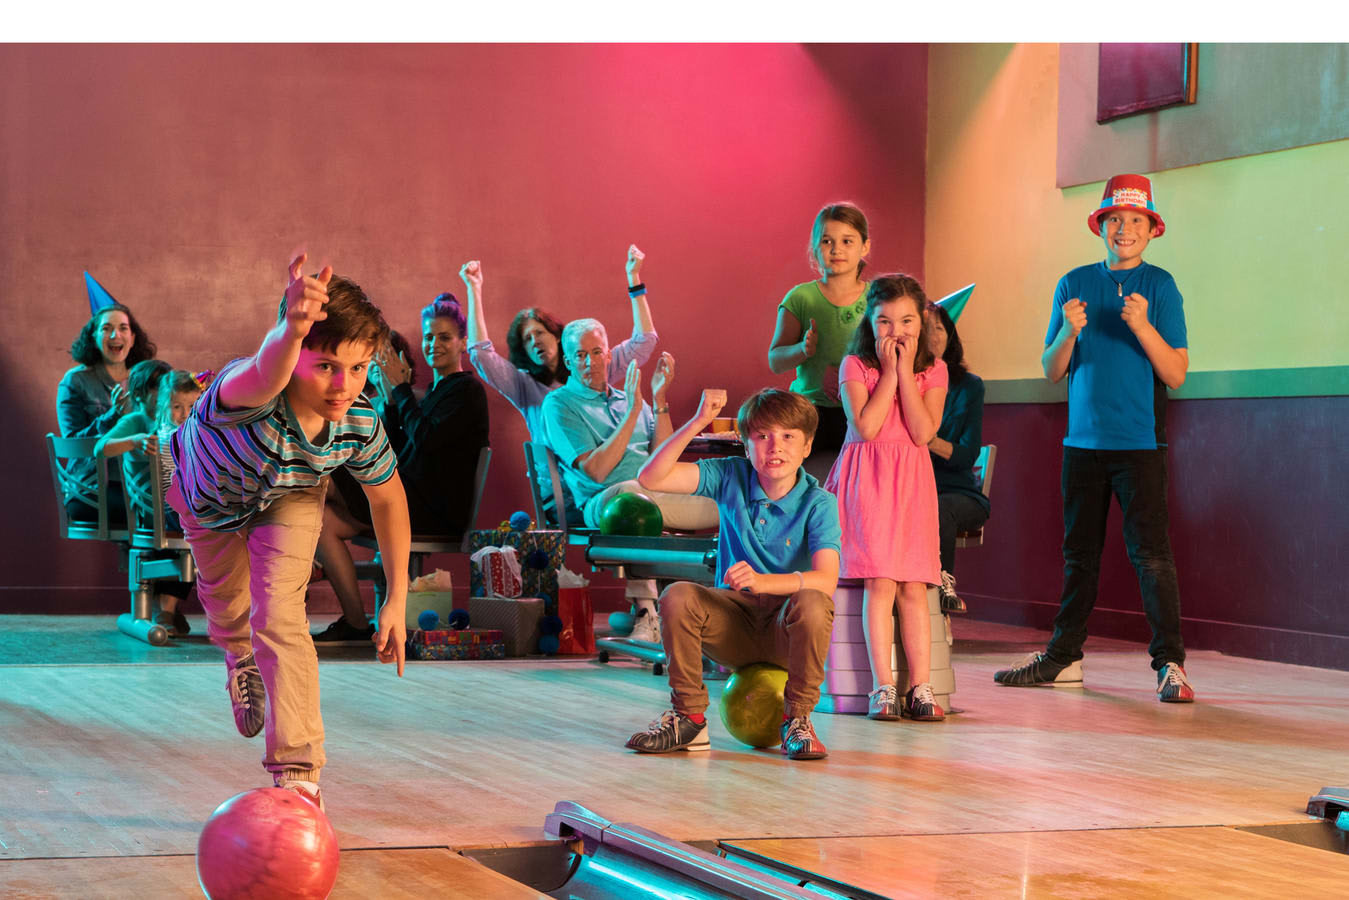 Kids Bowling with Family